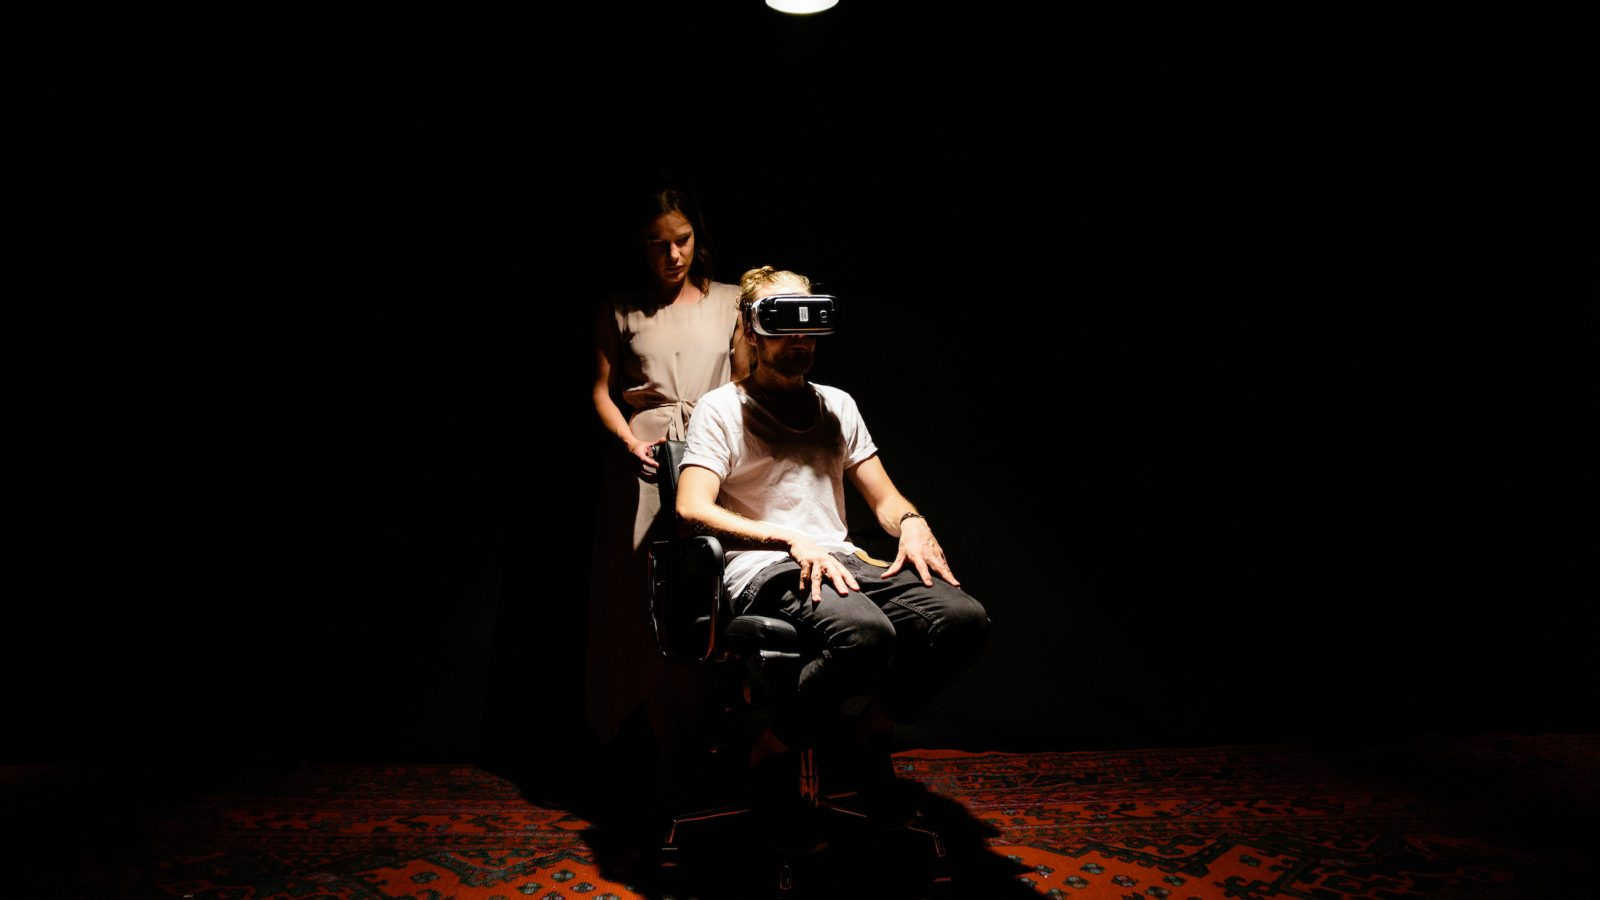 A woman stands behind a man wearing a VR headset in a darkened room.